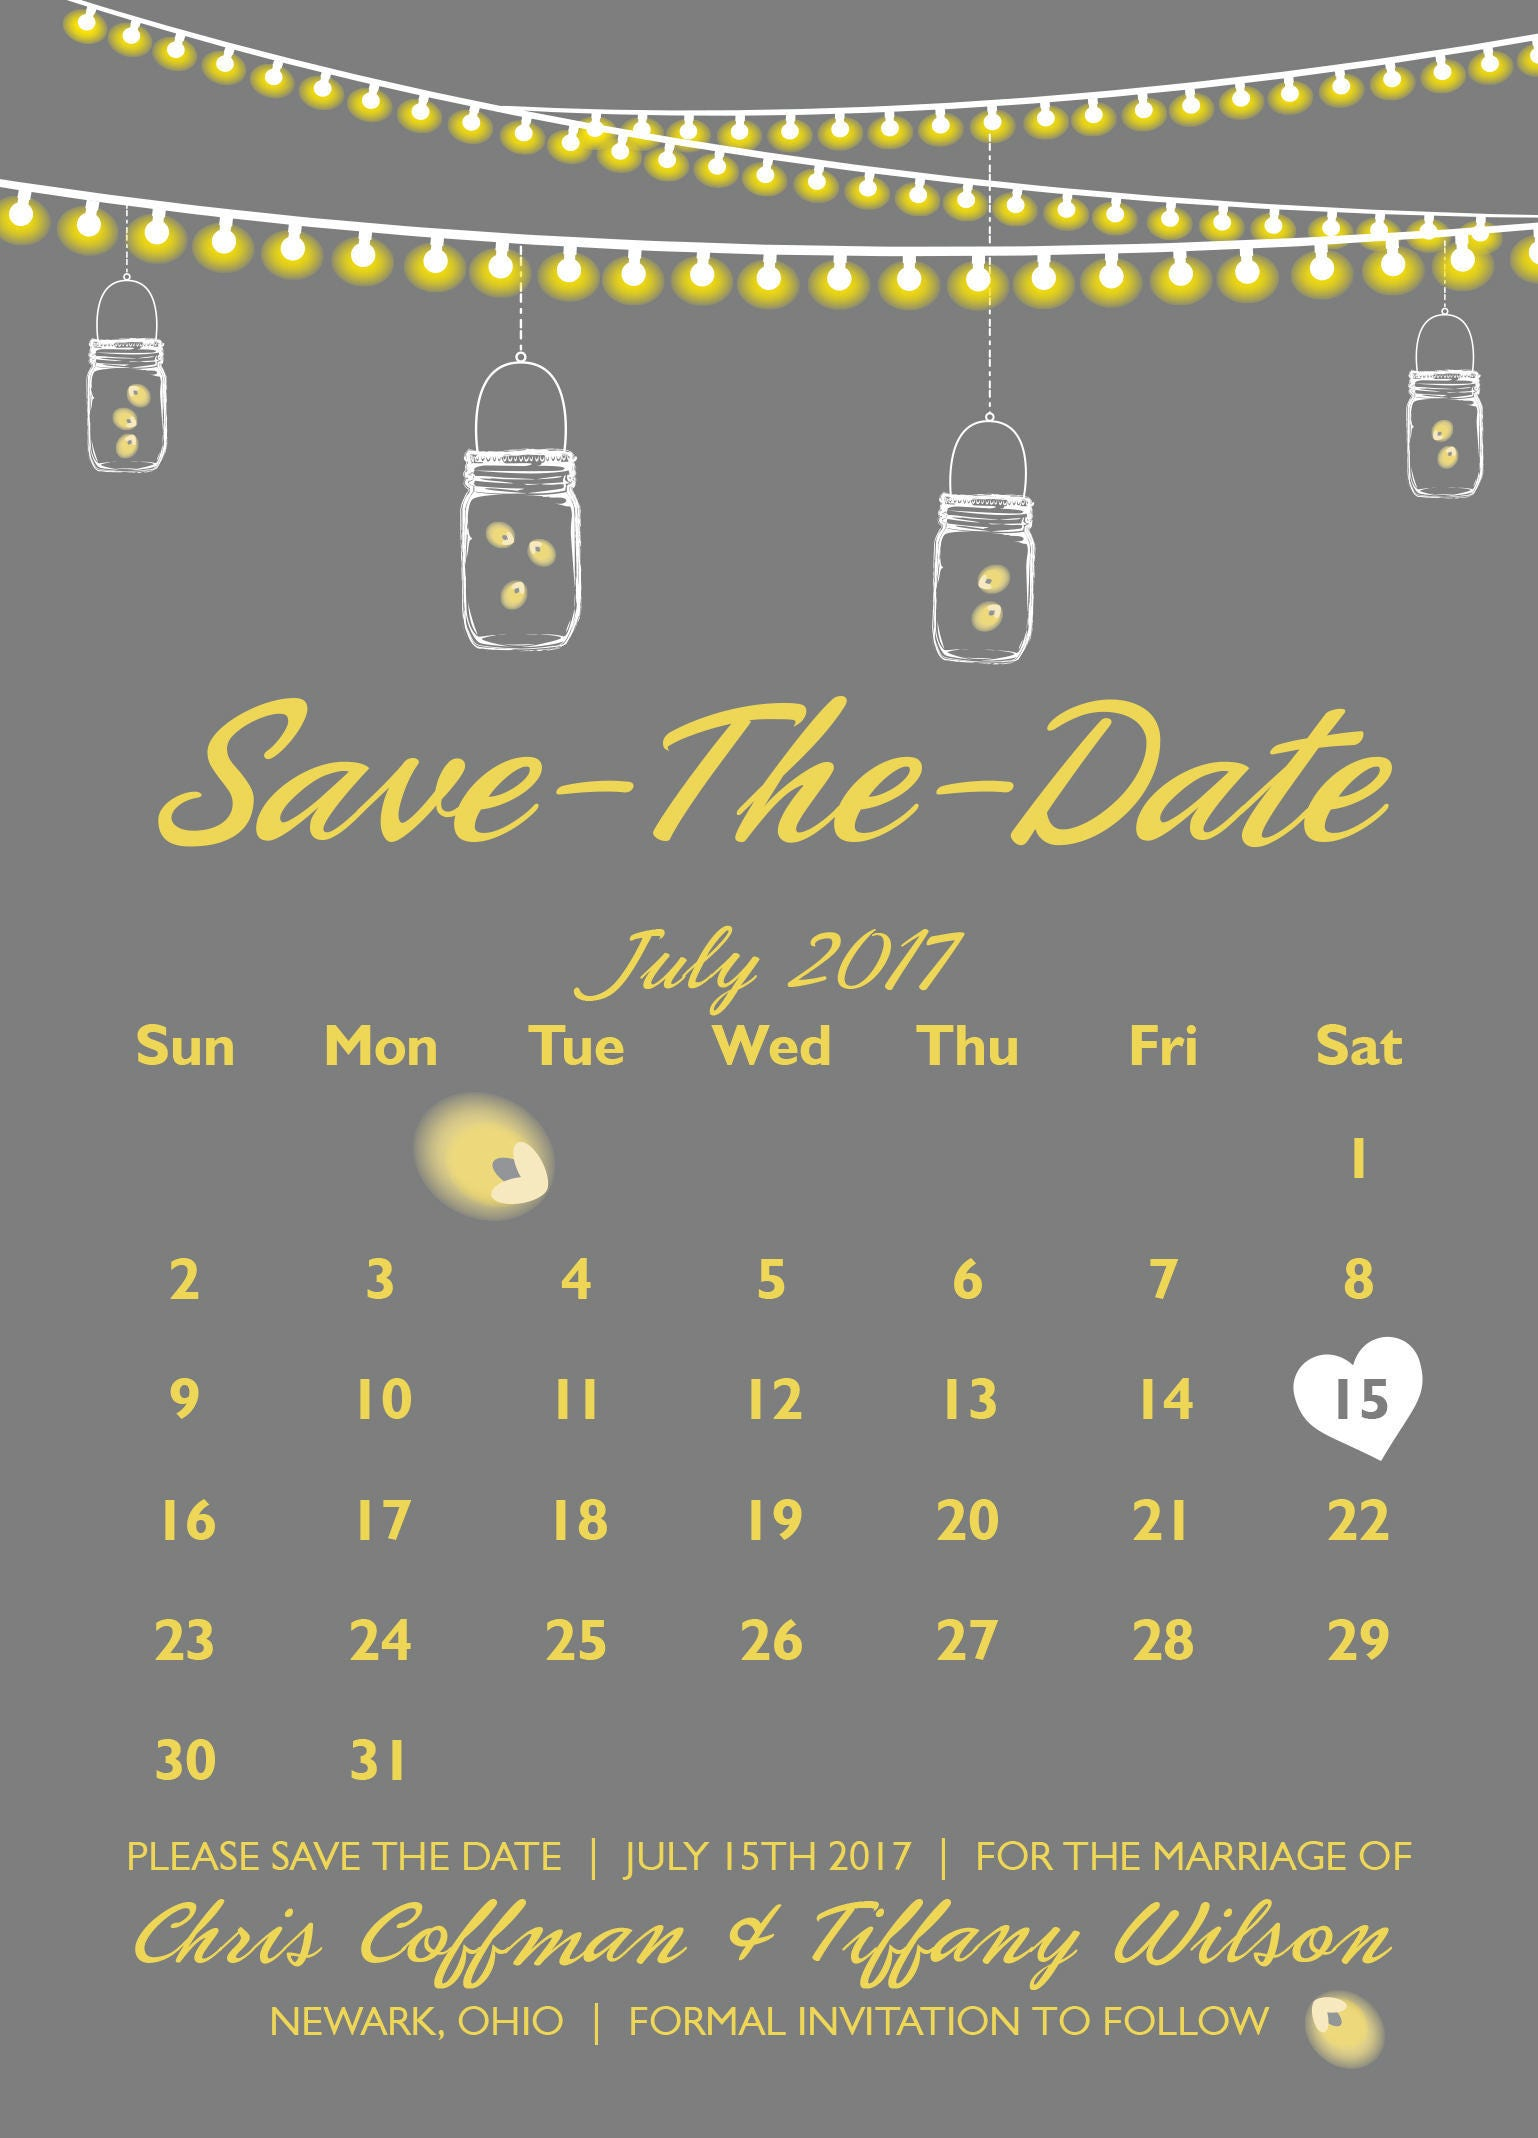 save the date postcards save the date cards save the dates template lights calendar gray. Black Bedroom Furniture Sets. Home Design Ideas